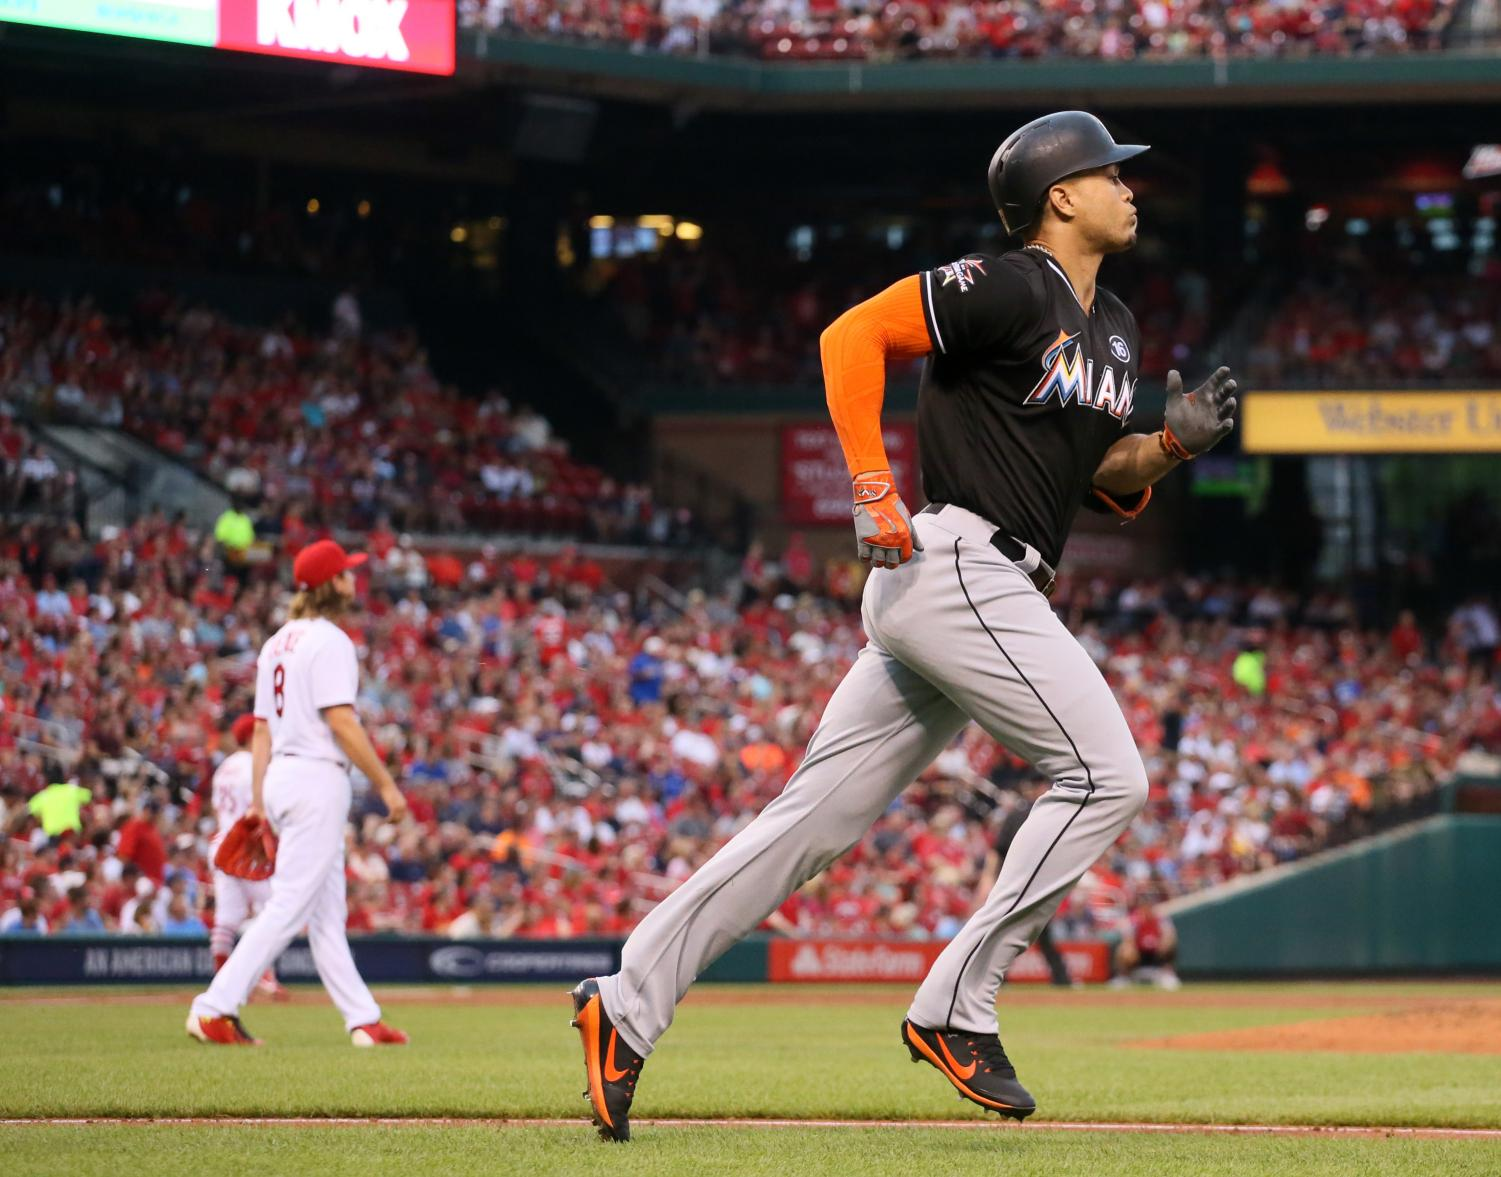 The Miami Marlins' Giancarlo Stanton, right, rounds the bases after hitting a two-run home run against the St. Louis Cardinals on July 5, 2017, at Busch Stadium in St. Louis.